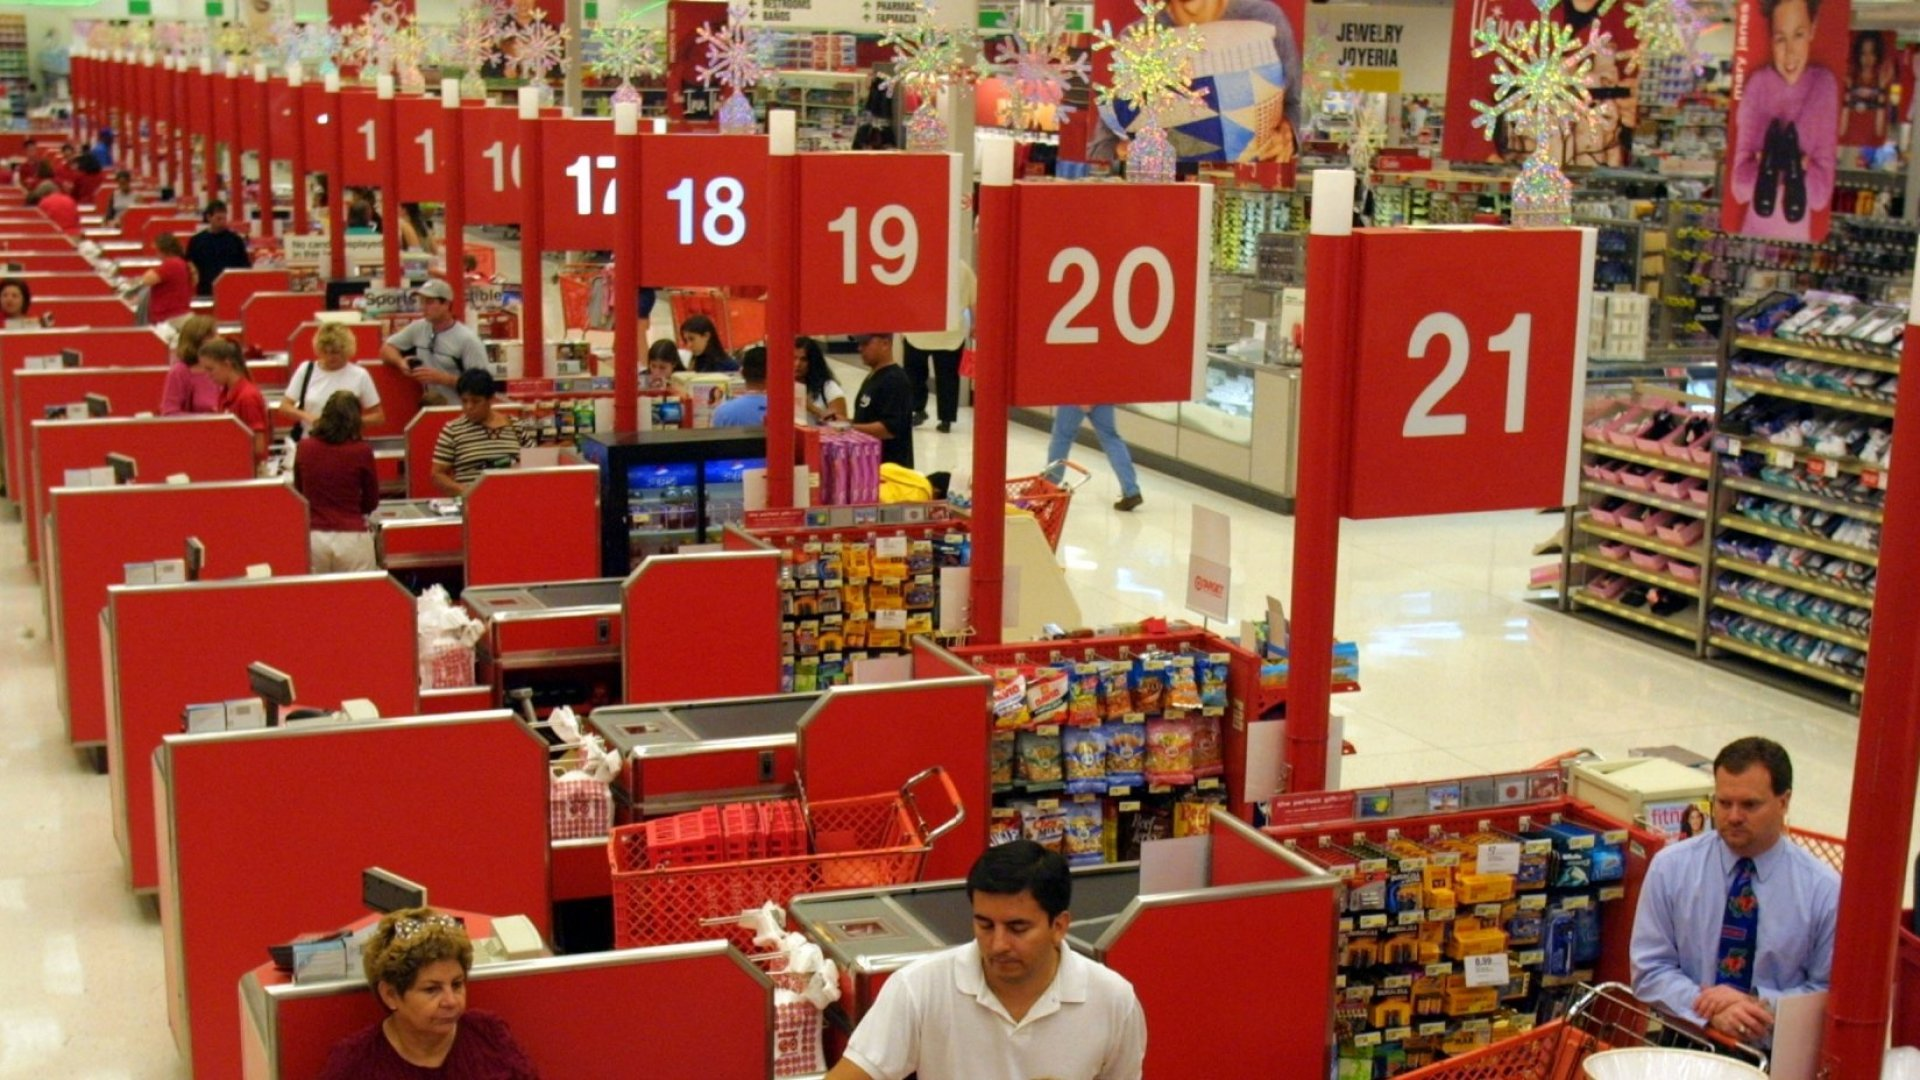 U.S. Retail Sales Continued to Rise in June, Signaled Stronger Consumer Spending